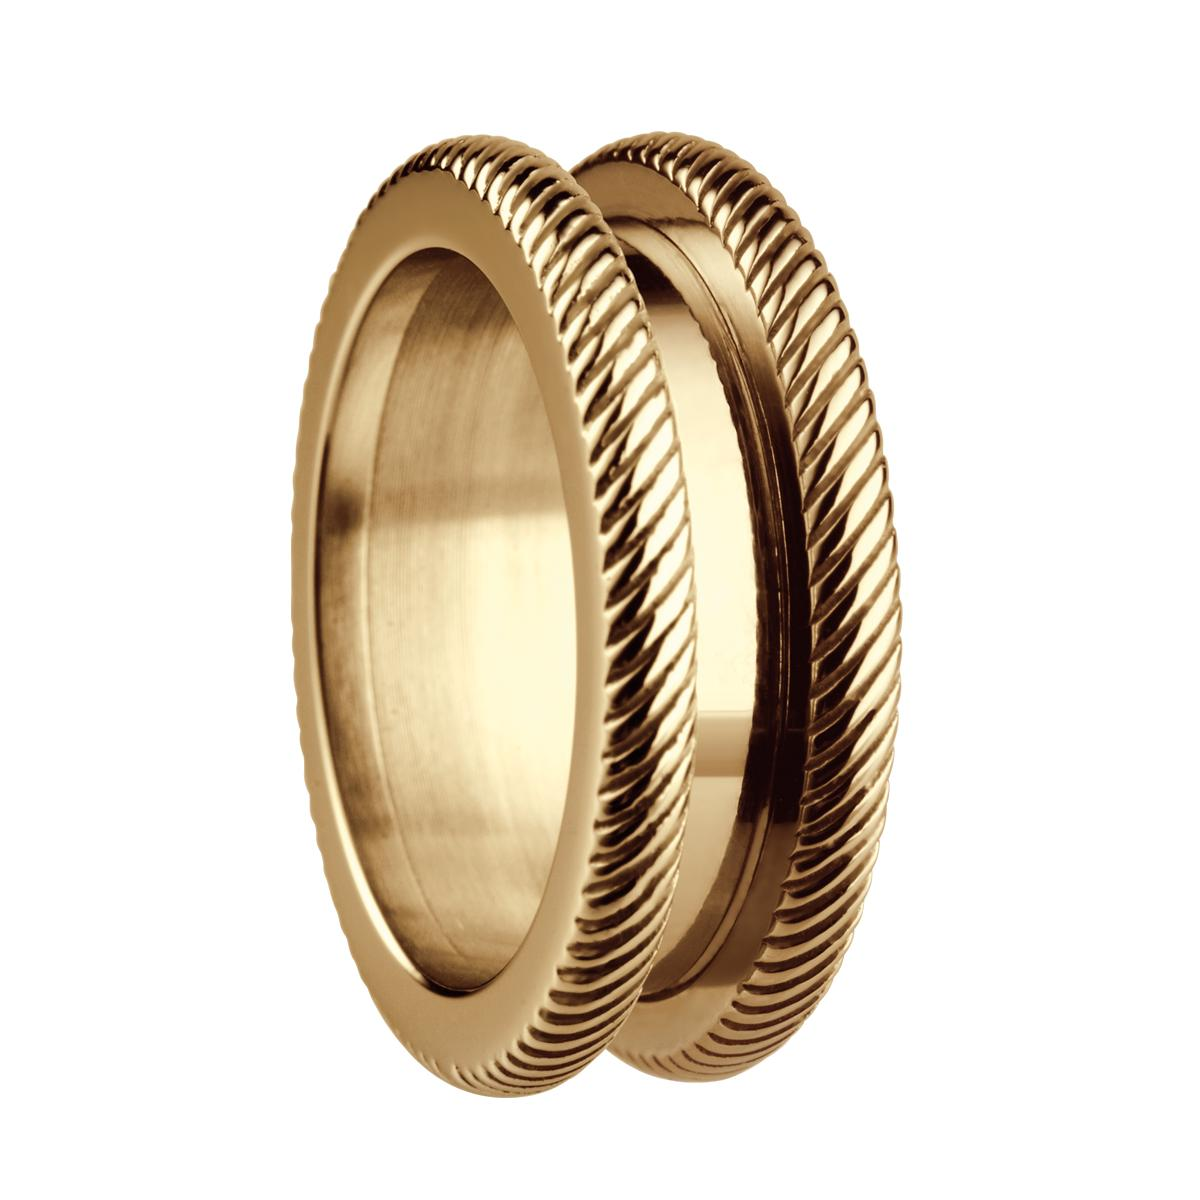 Bering Outer Ring 5212073 1